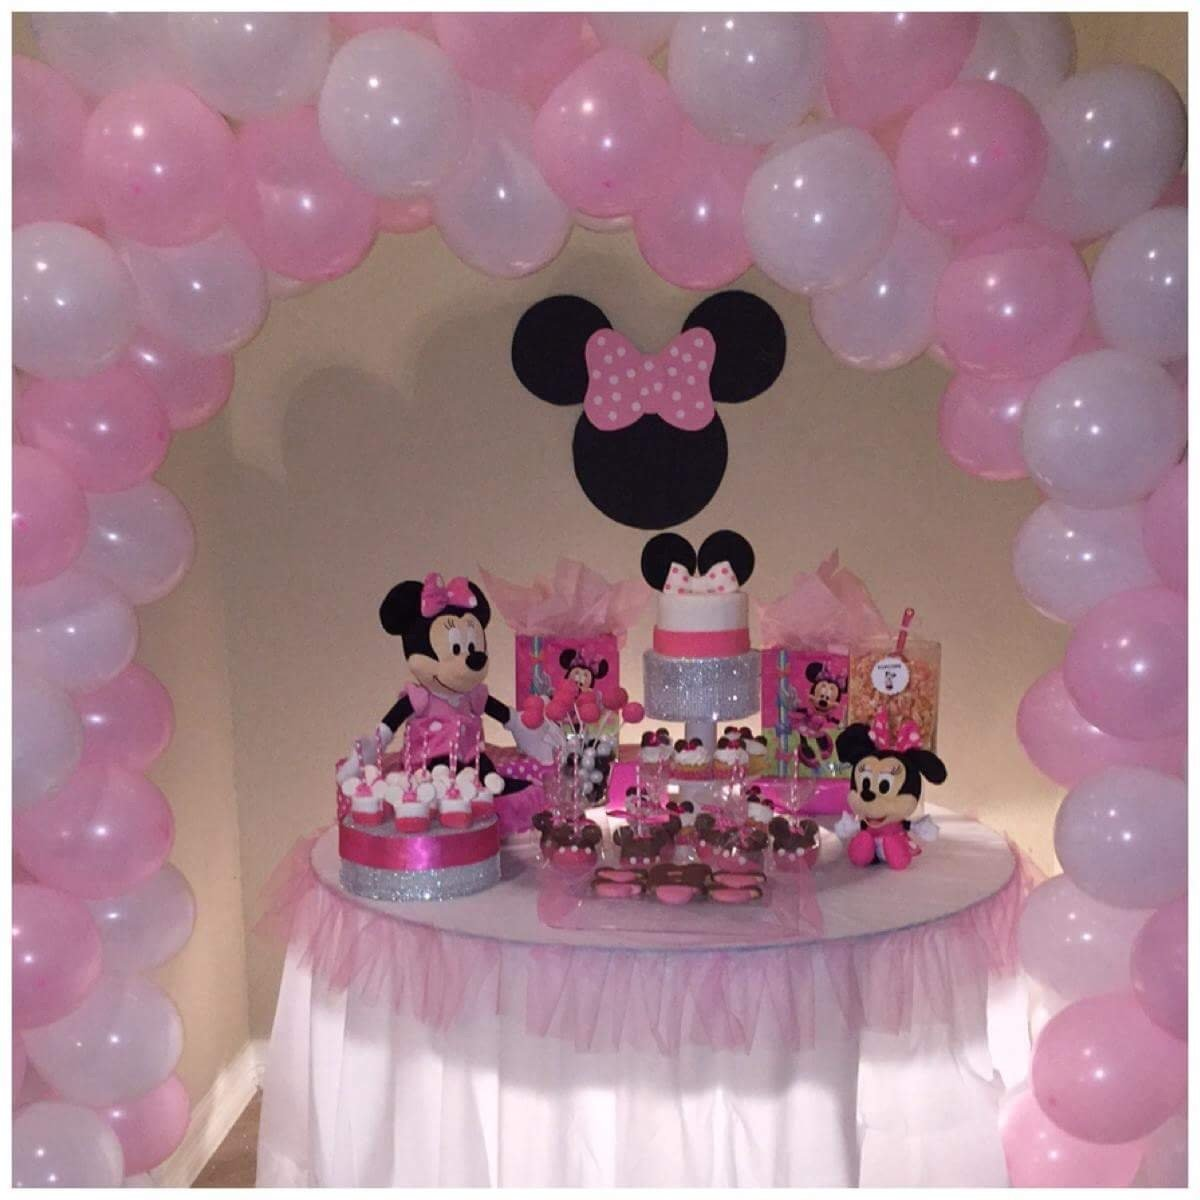 10 Beautiful Baby Minnie Mouse Party Ideas minnie mouse party table and pink and white balloon archthe 2020